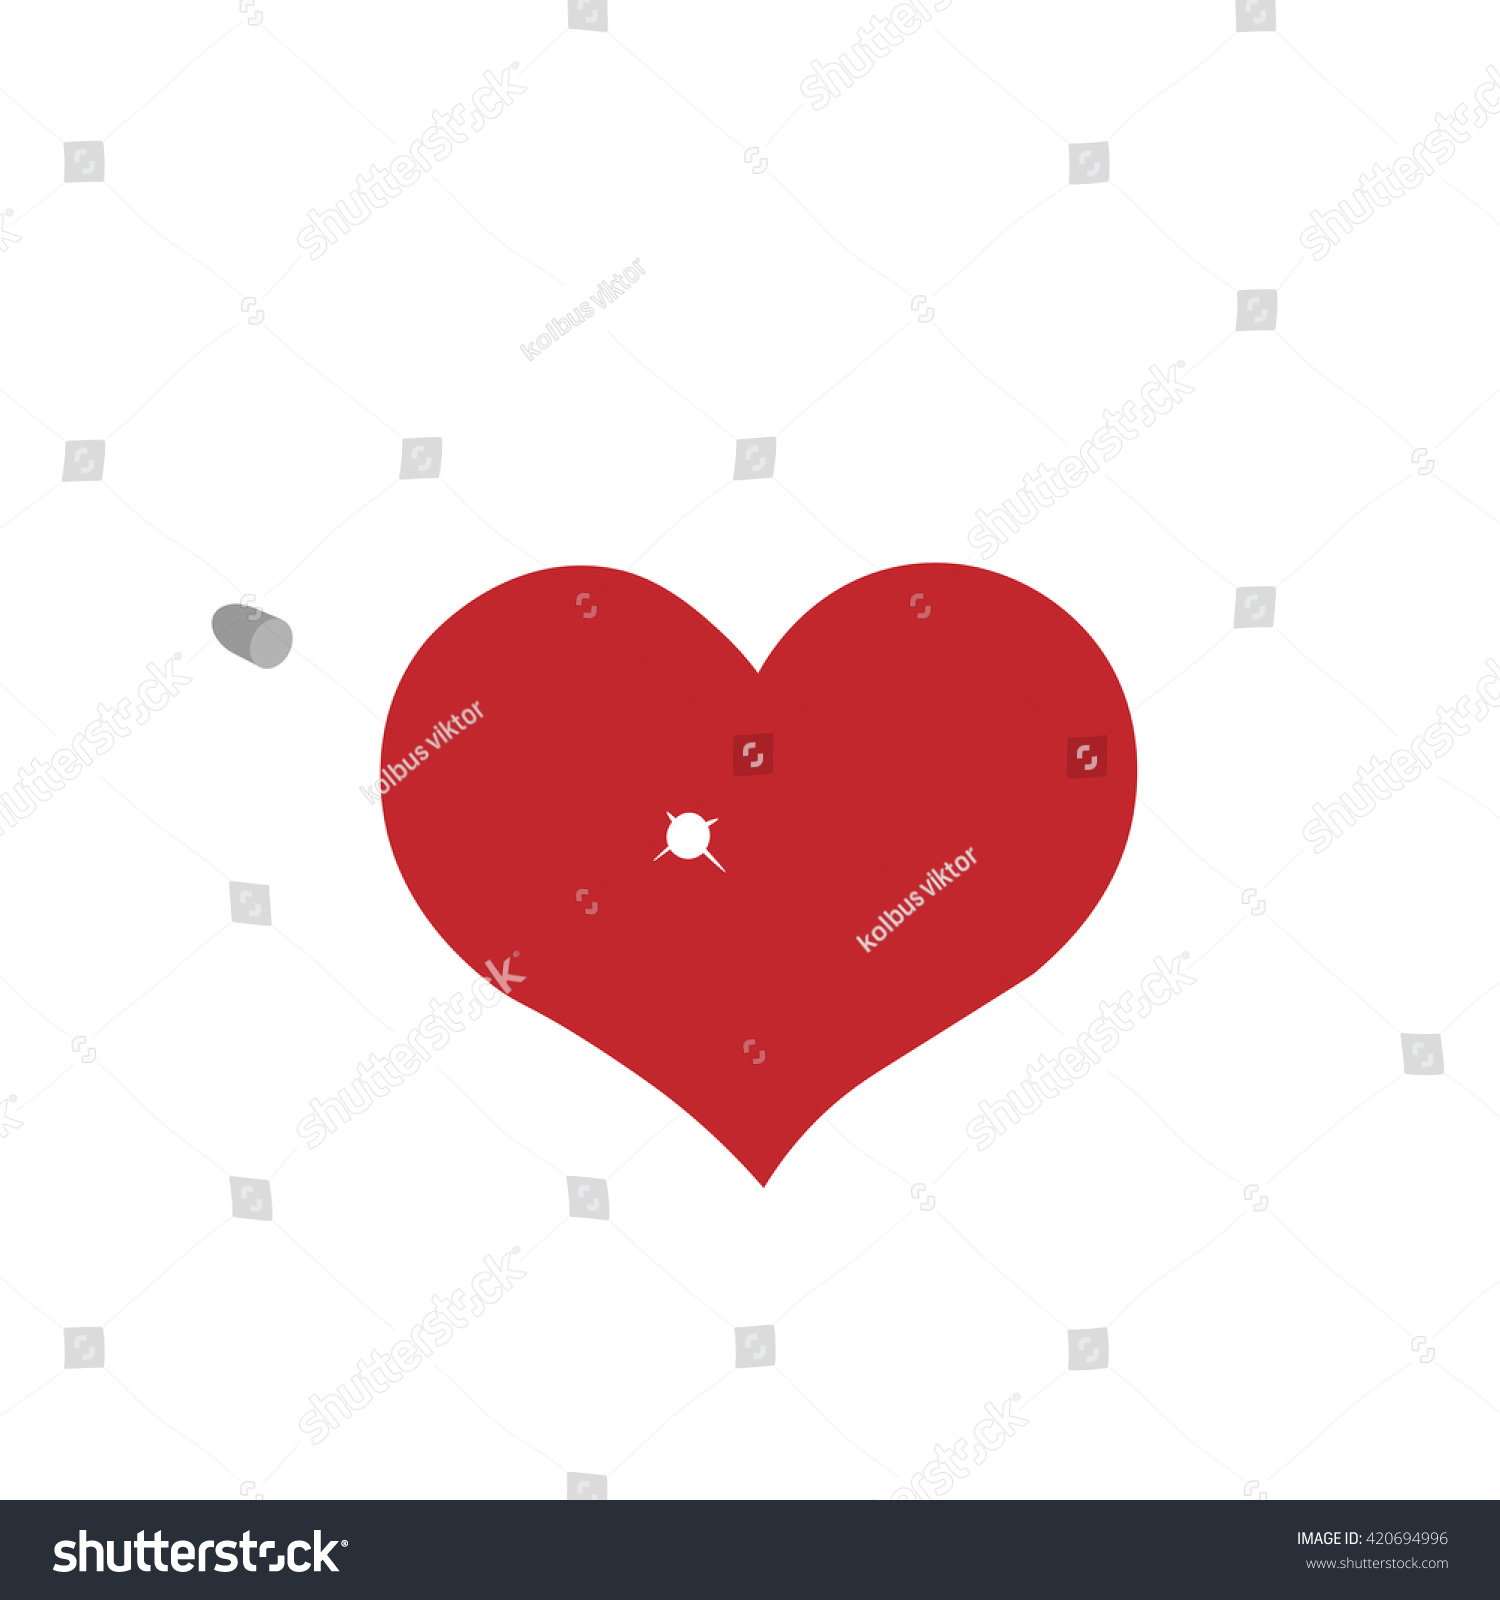 red heart icon emblem isolated on white background flat style for